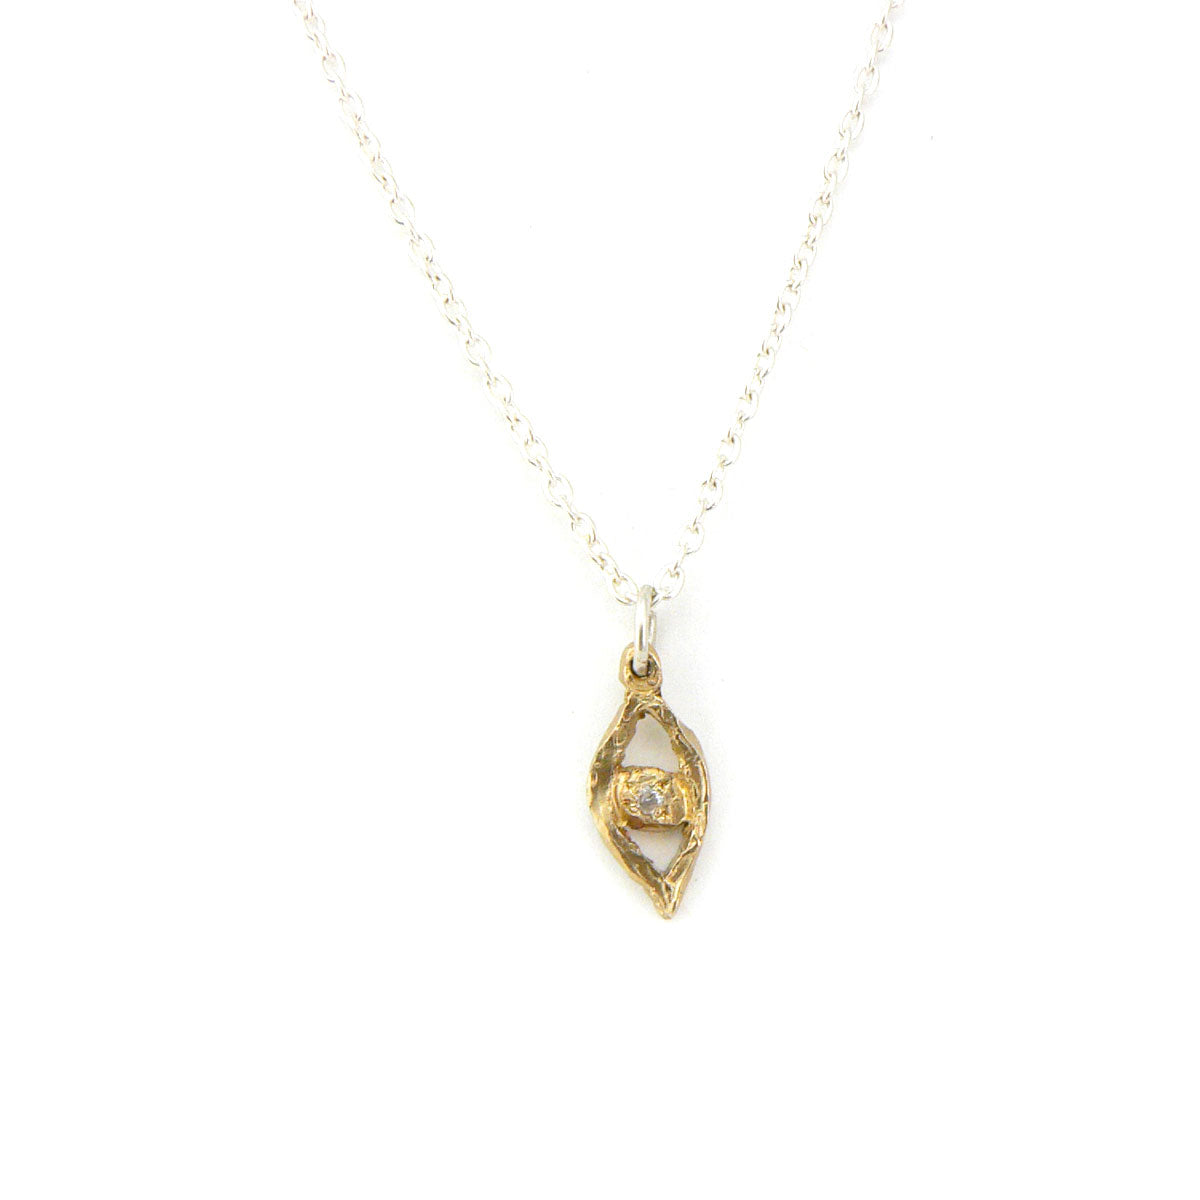 textured 9ct gold eye pendant with diamonds on silver chain, Custom Bespoke Handmade.